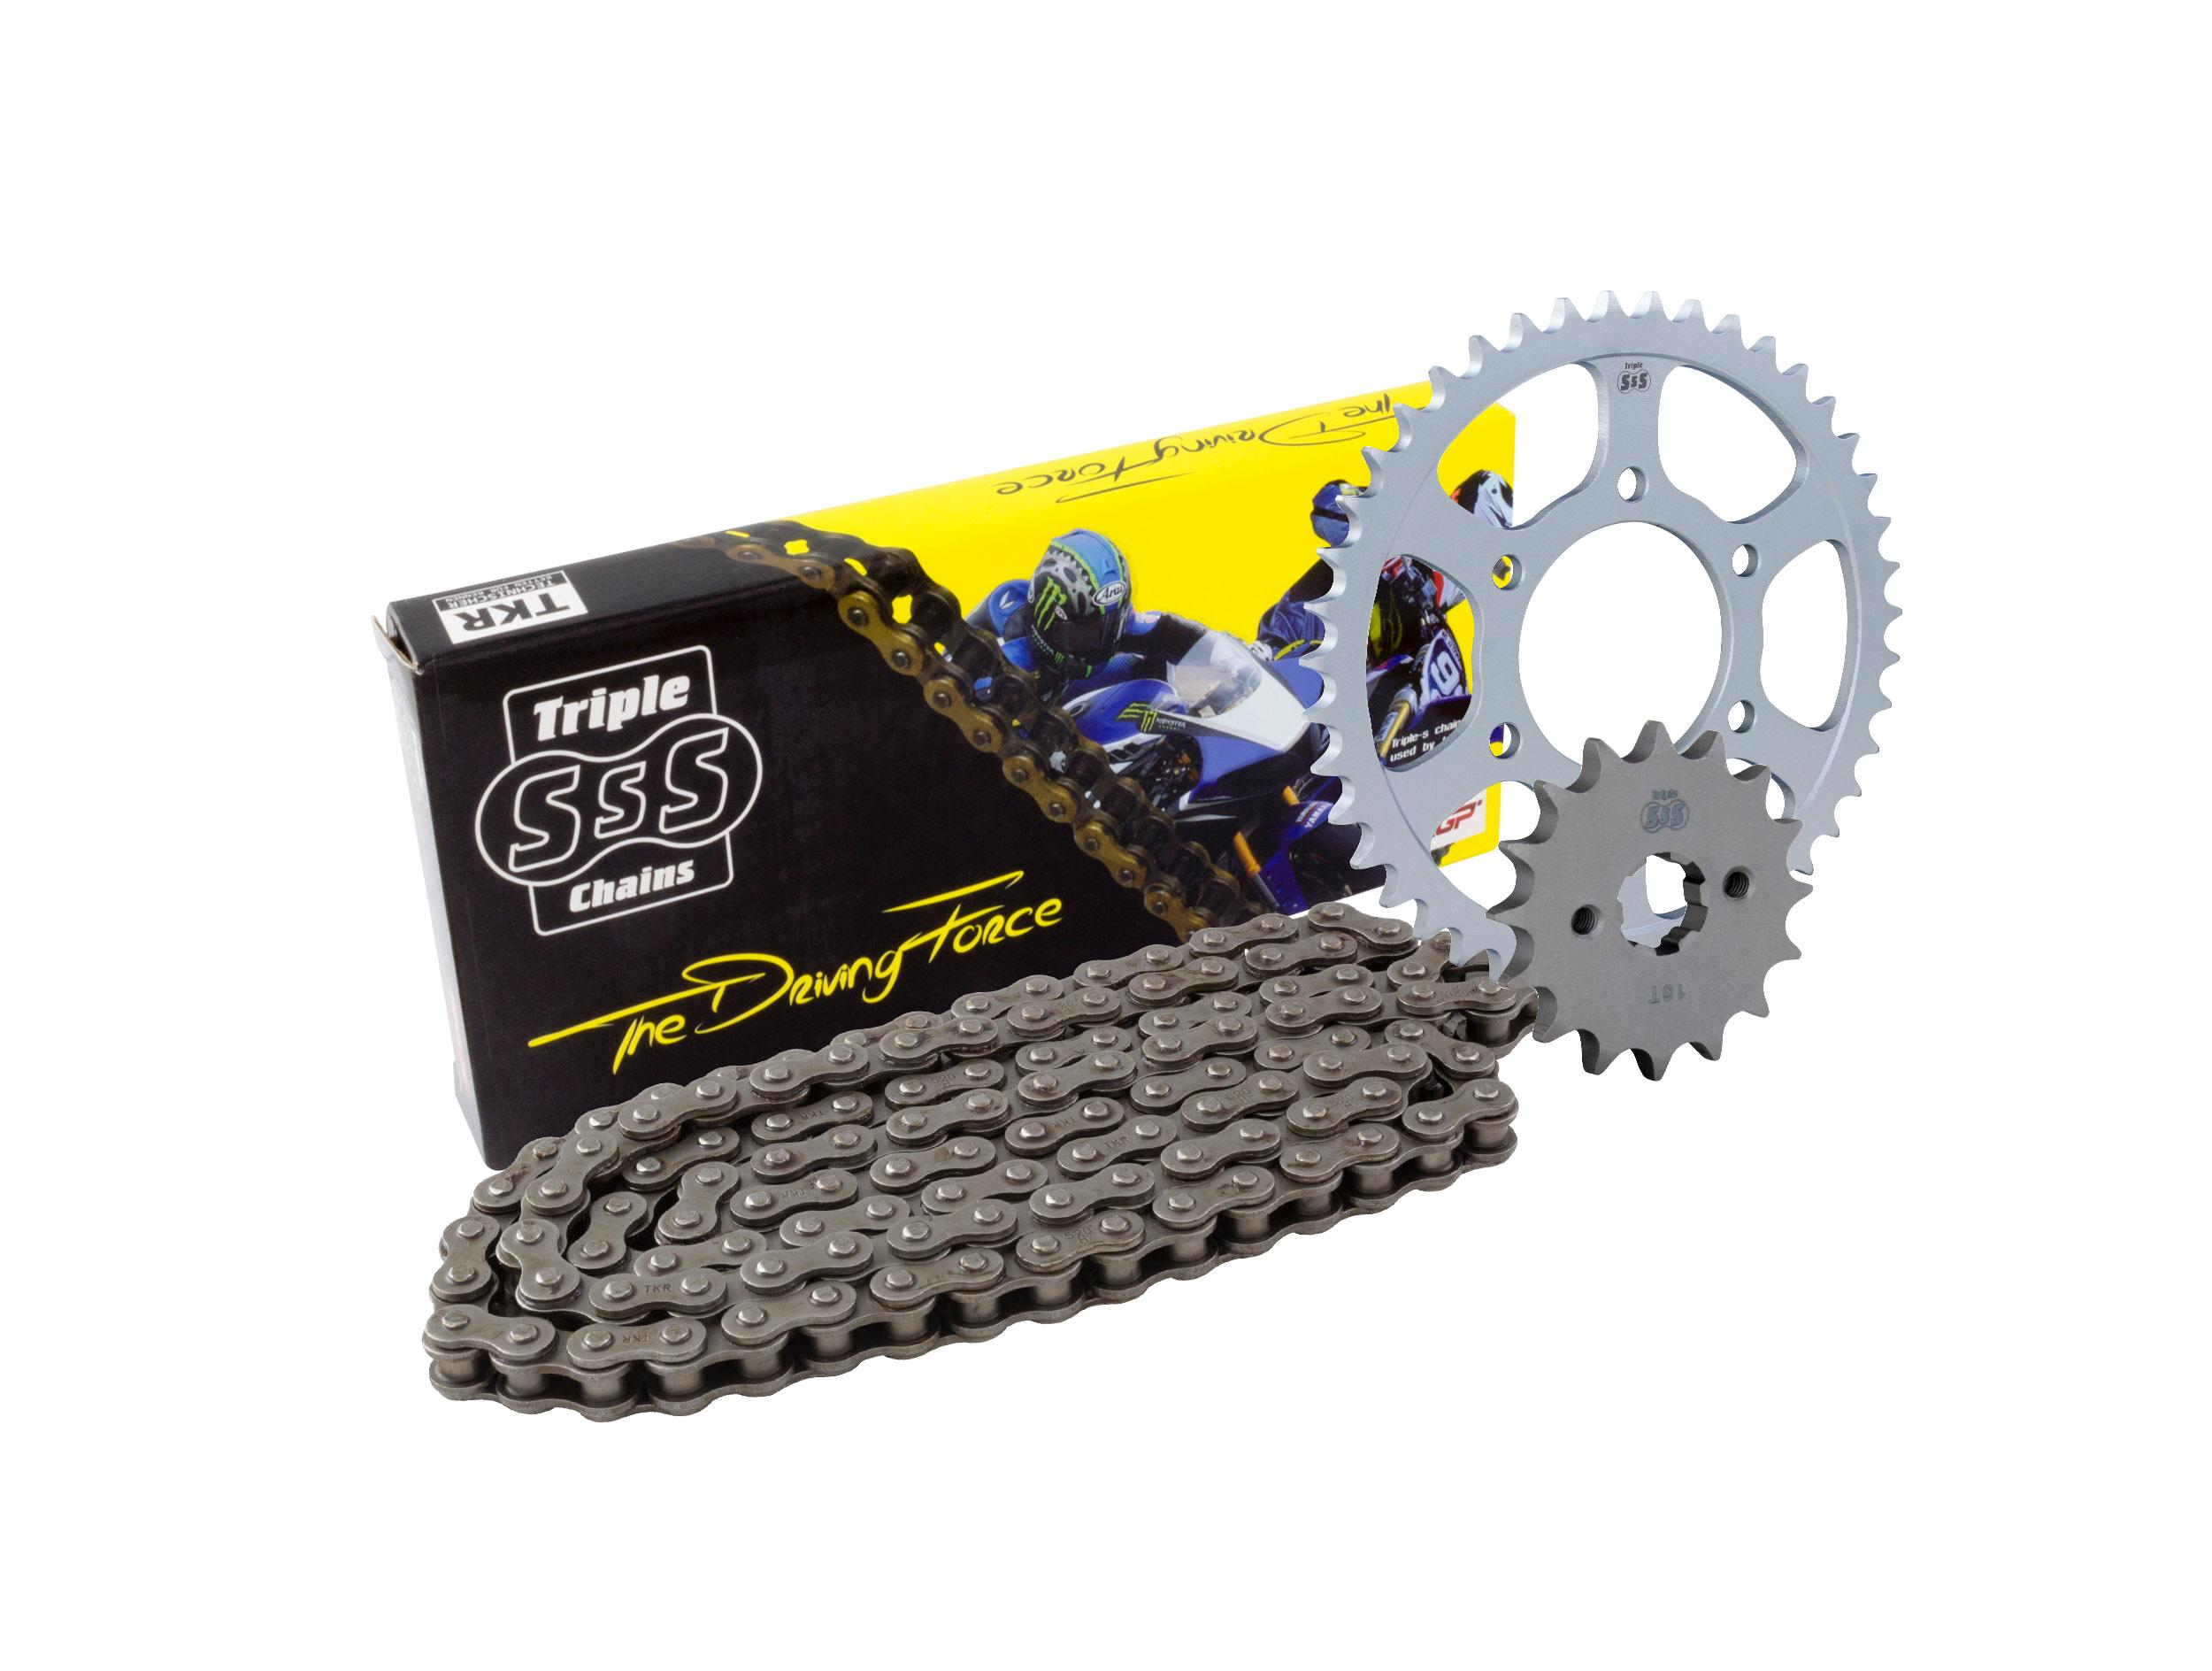 Rieju MRT50 09-10 Chain & Sprocket Kit: 11T Front, 52T Rear, HD Chain 420H 132 Link